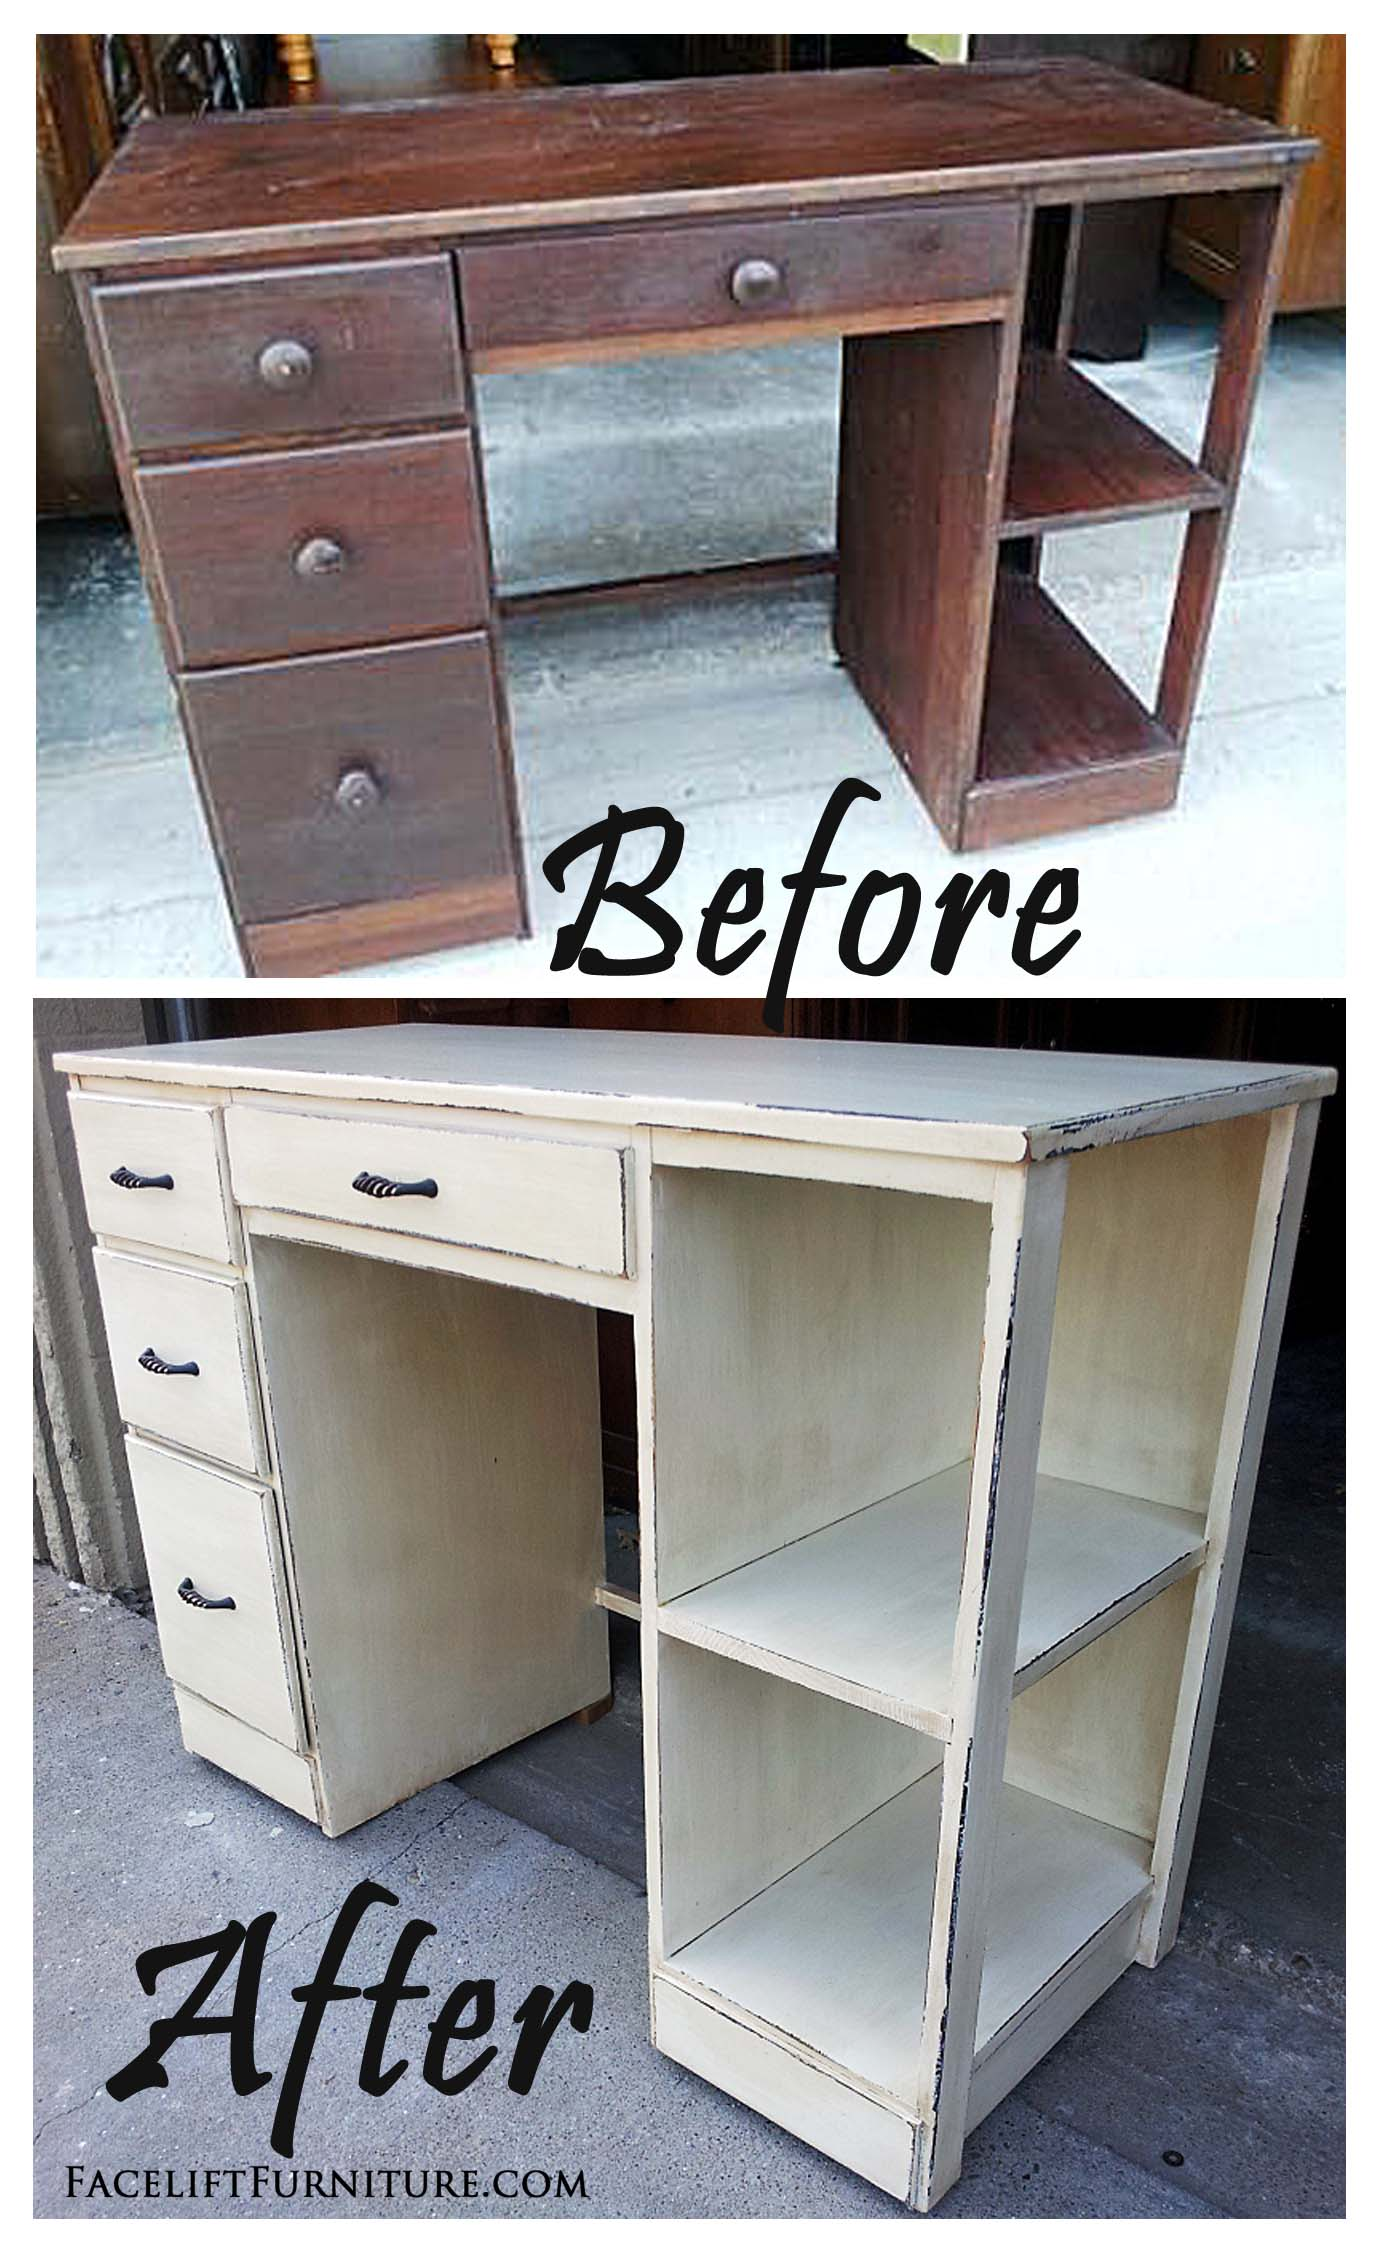 Off White Desk Shelf Before After